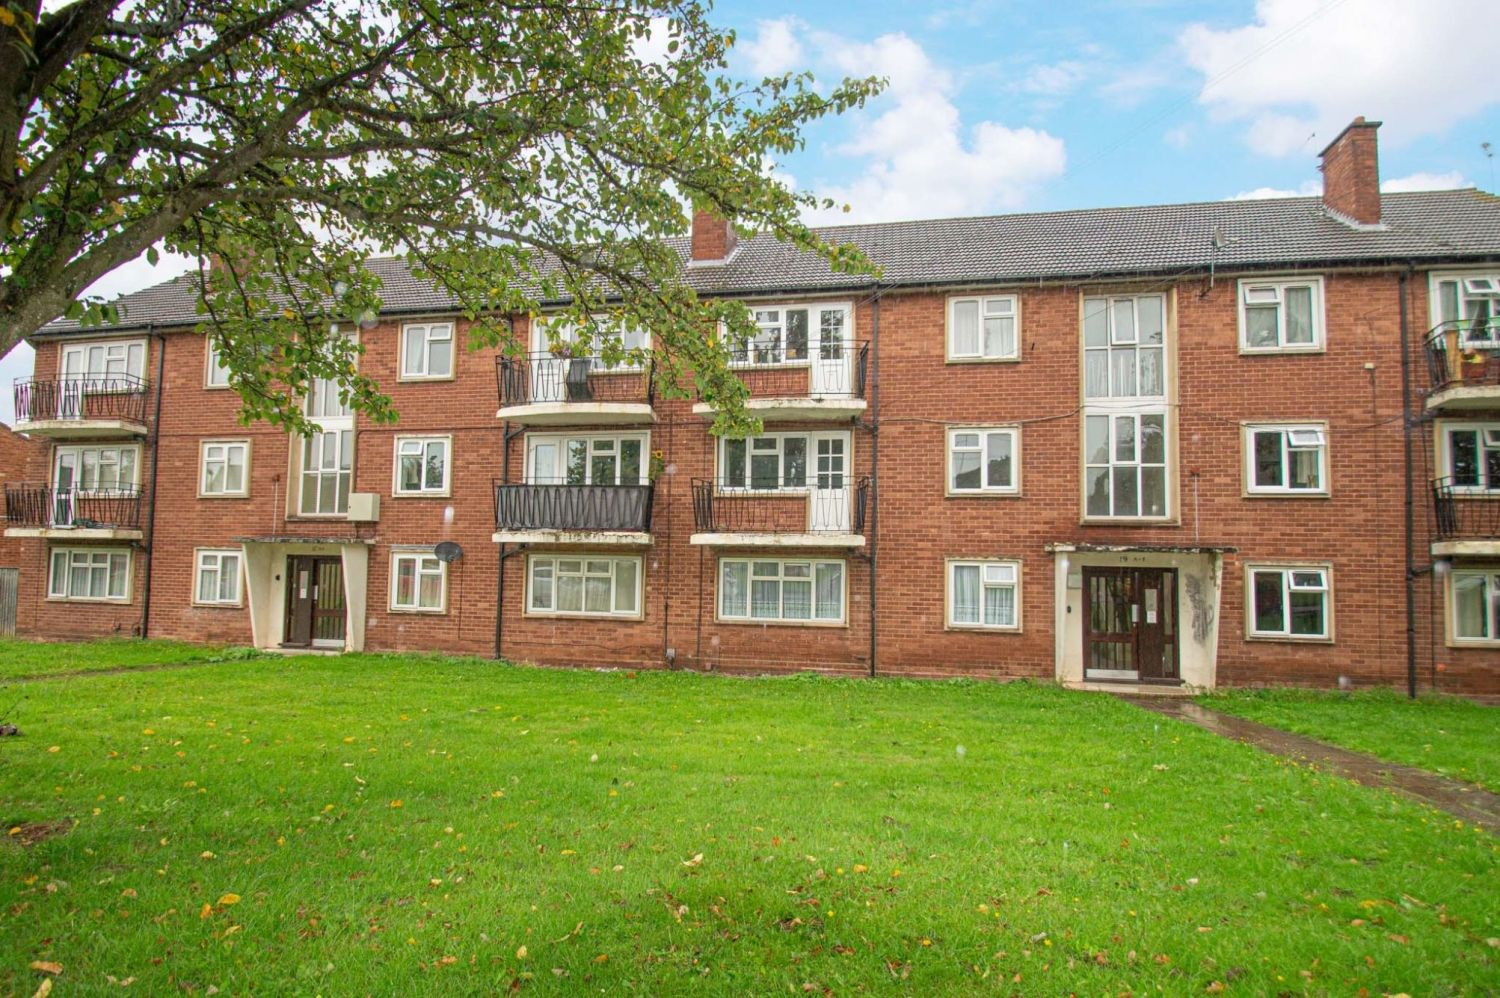 2 bed flat for sale in Malvern Avenue, Stourbridge 1